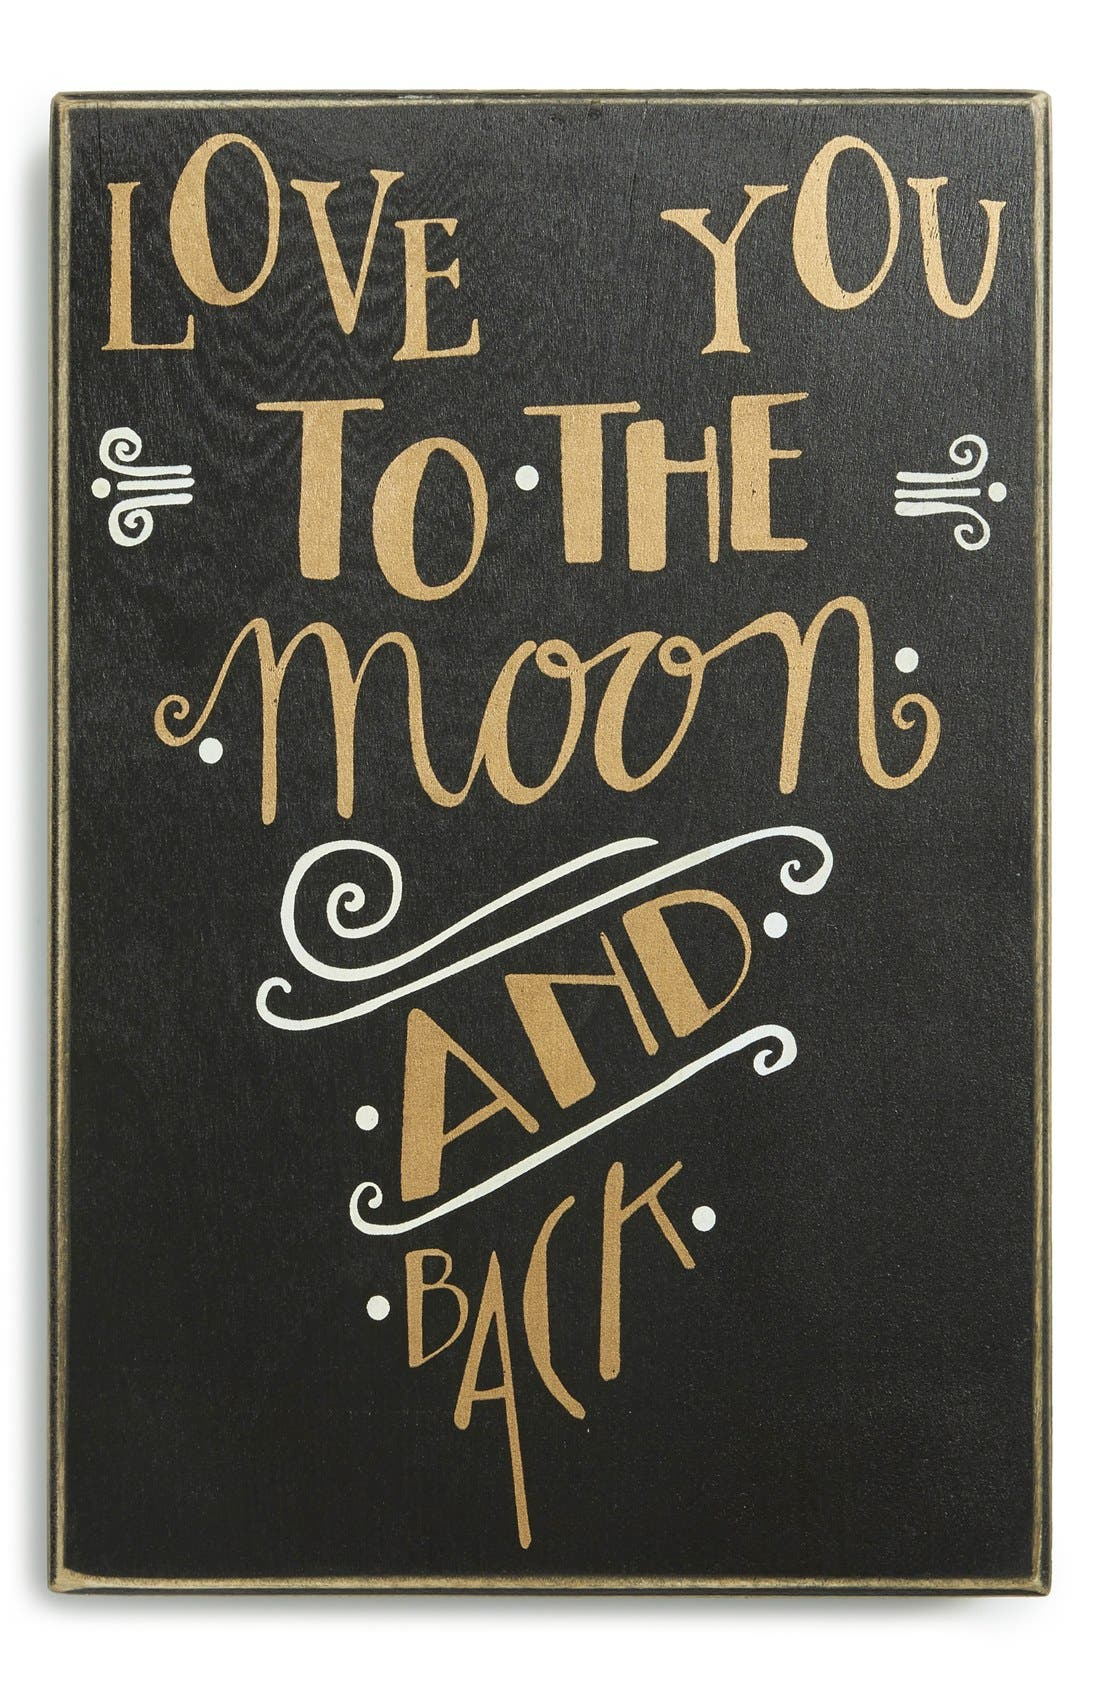 Alternate Image 1 Selected - Primitives by Kathy 'Love You to the Moon and Back' Box Sign